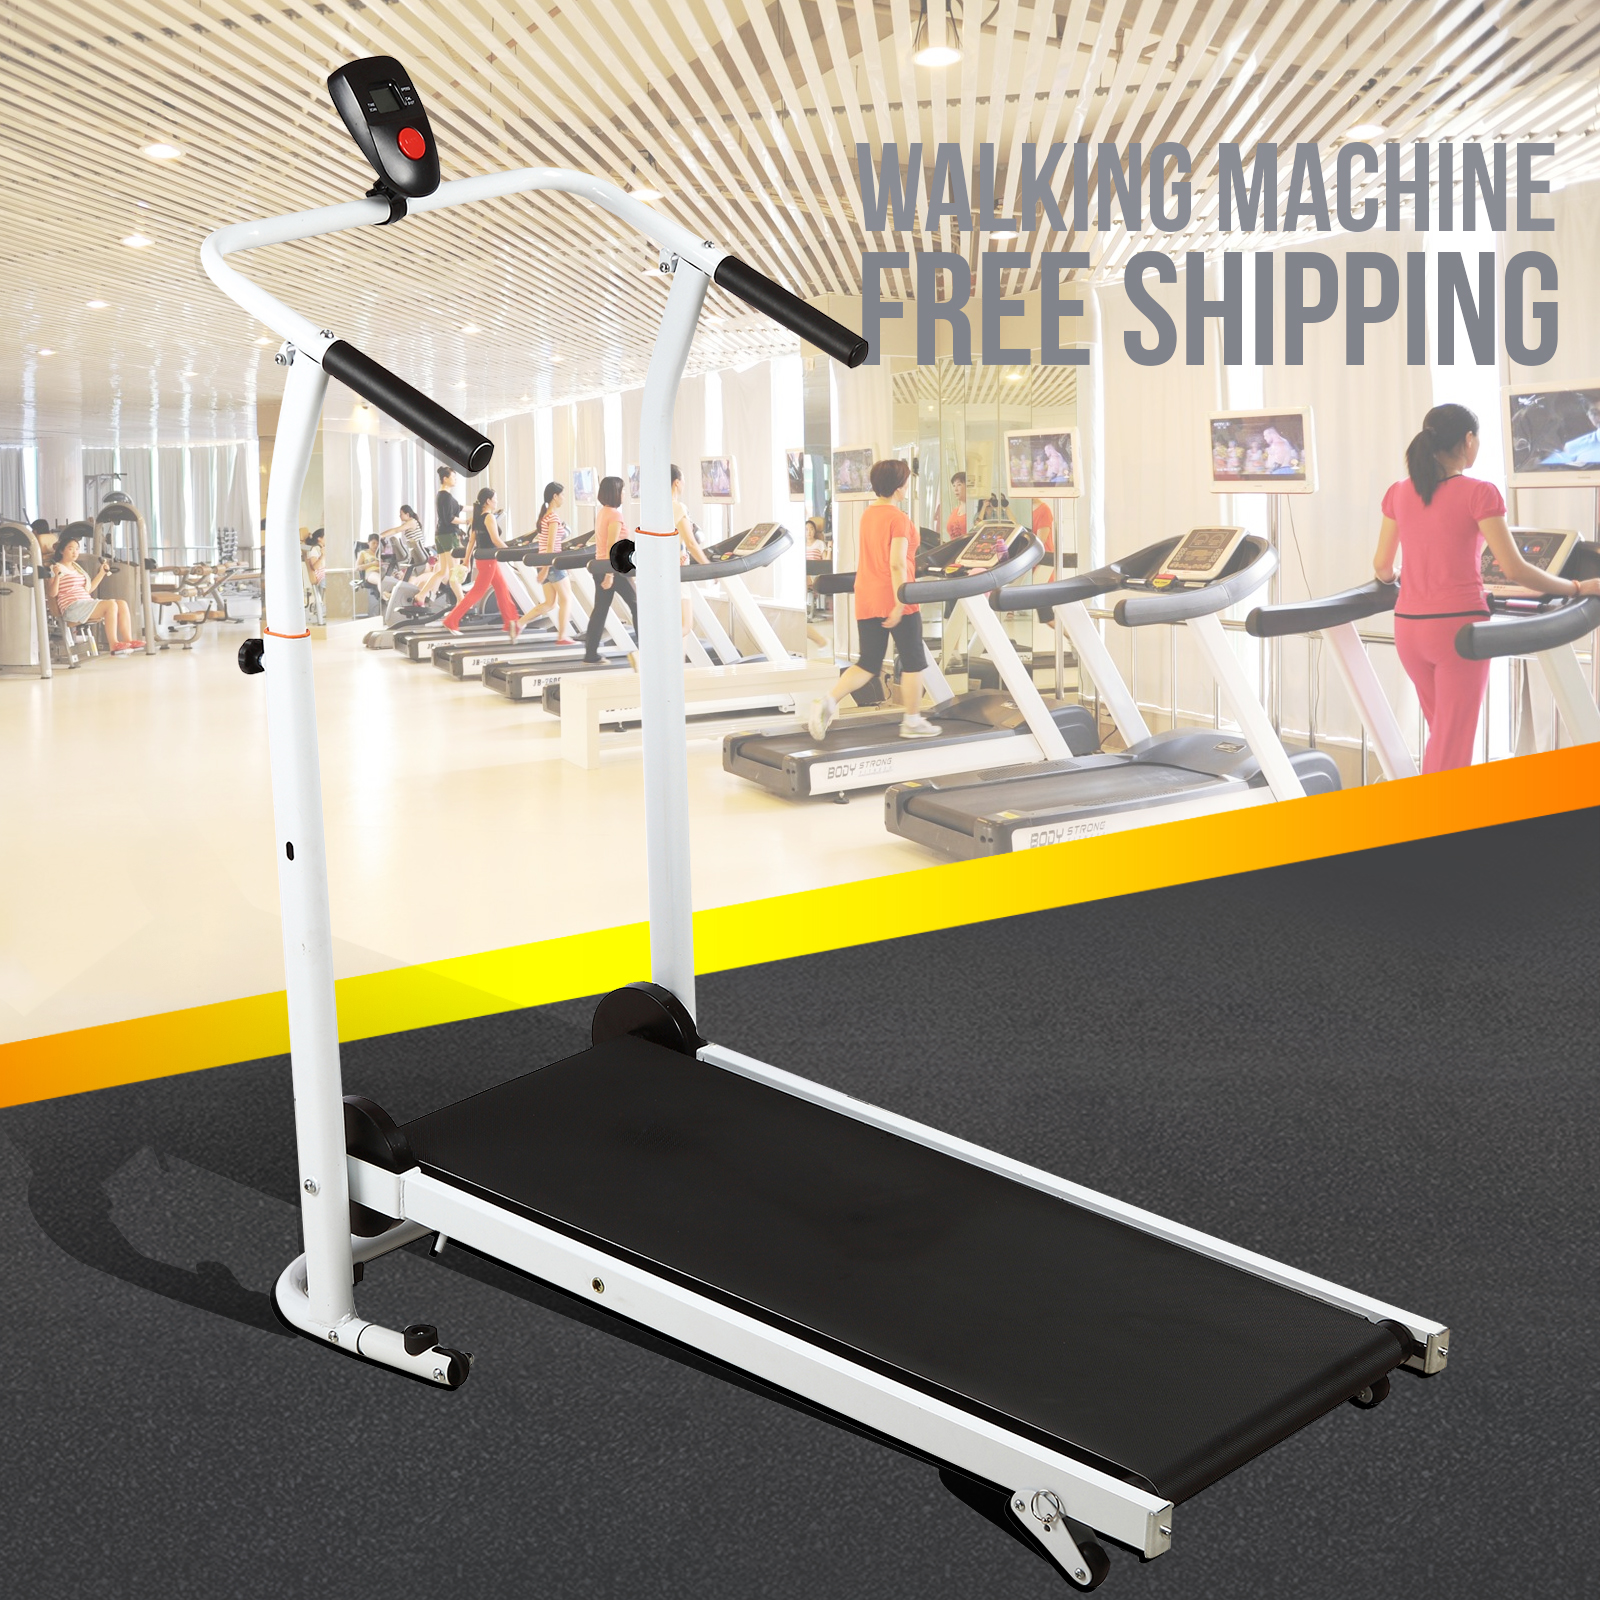 Uenjoy Folding Portable Incline Manual Treadmill Walking Running Fitness Gym